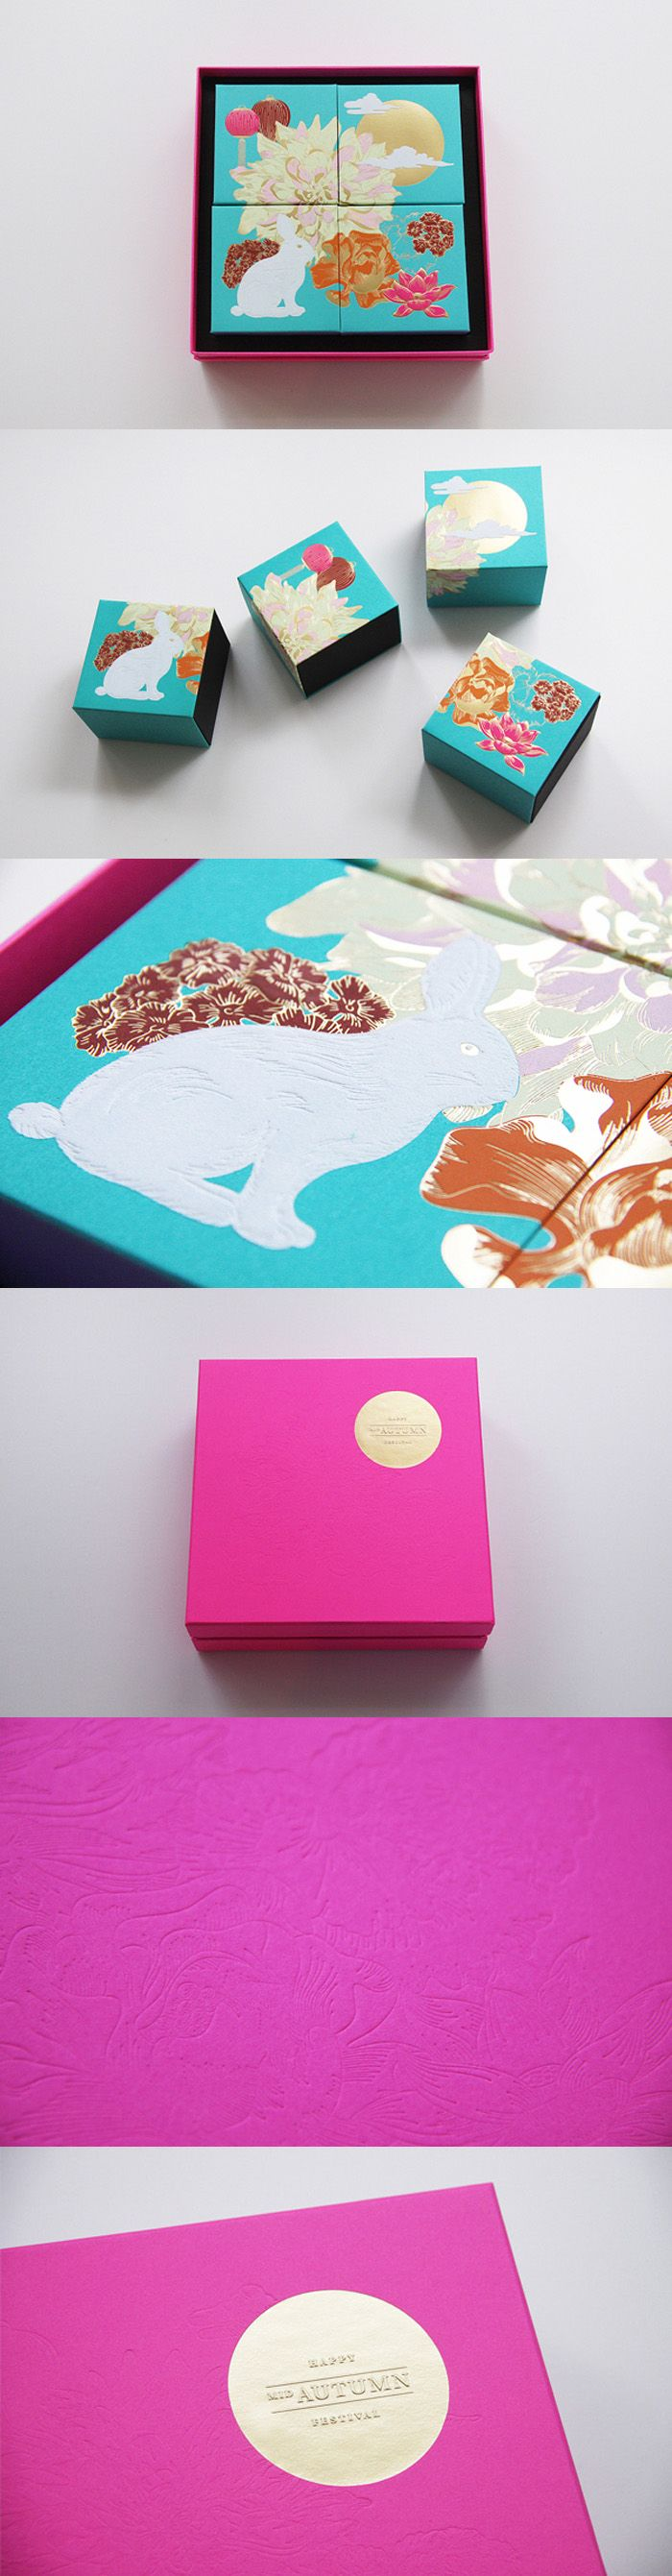 24 best images about MOONCAKE PACKAGING on Pinterest ...